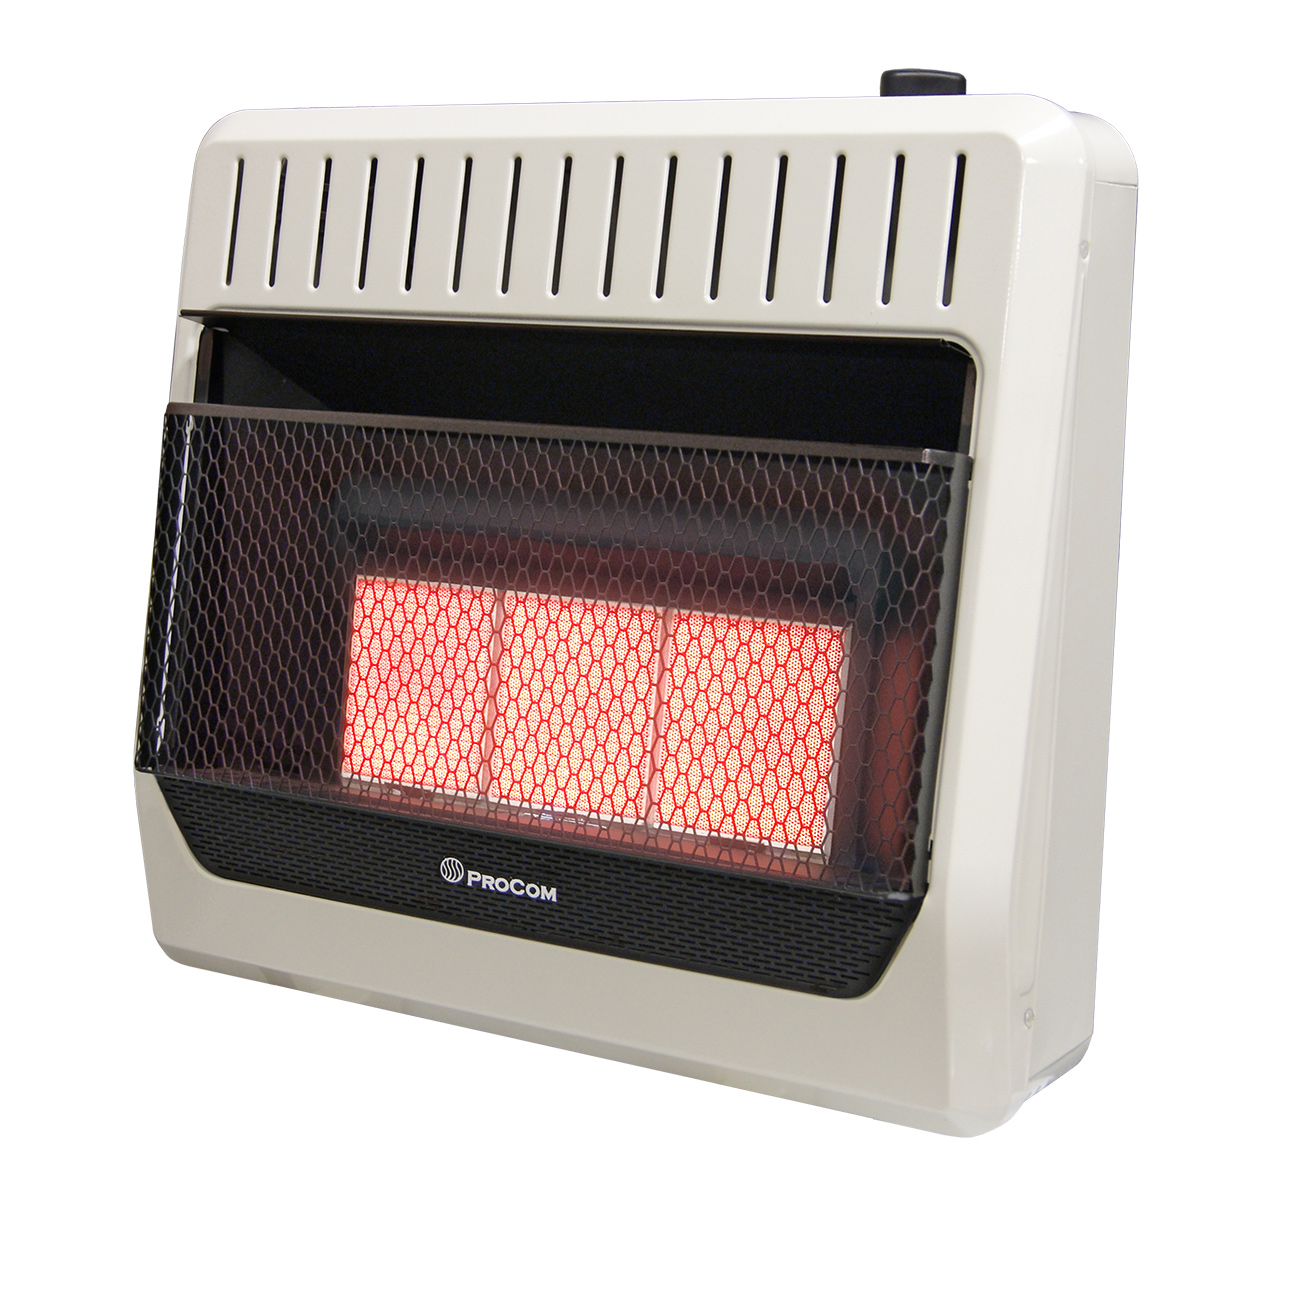 Ventless natural gas wall heater thermostat control for Best propane heating systems